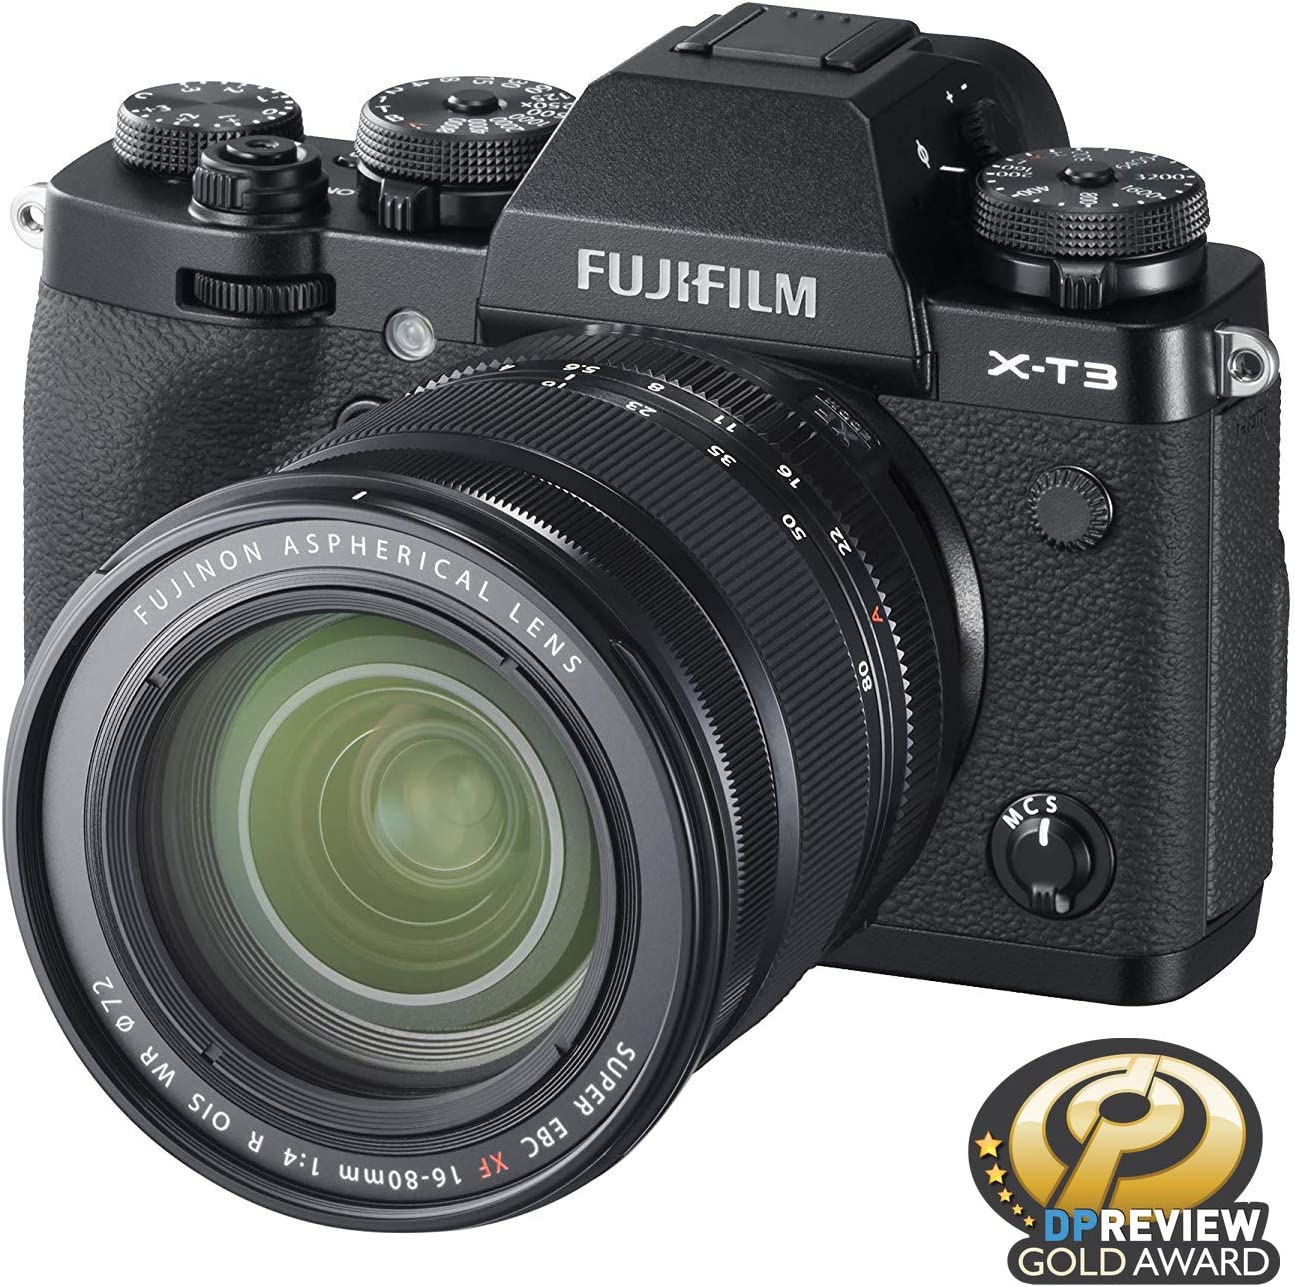 Fujifilm X-T3 Mirrorless Digital Camera w/XF16-80mm Lens Kit - Black